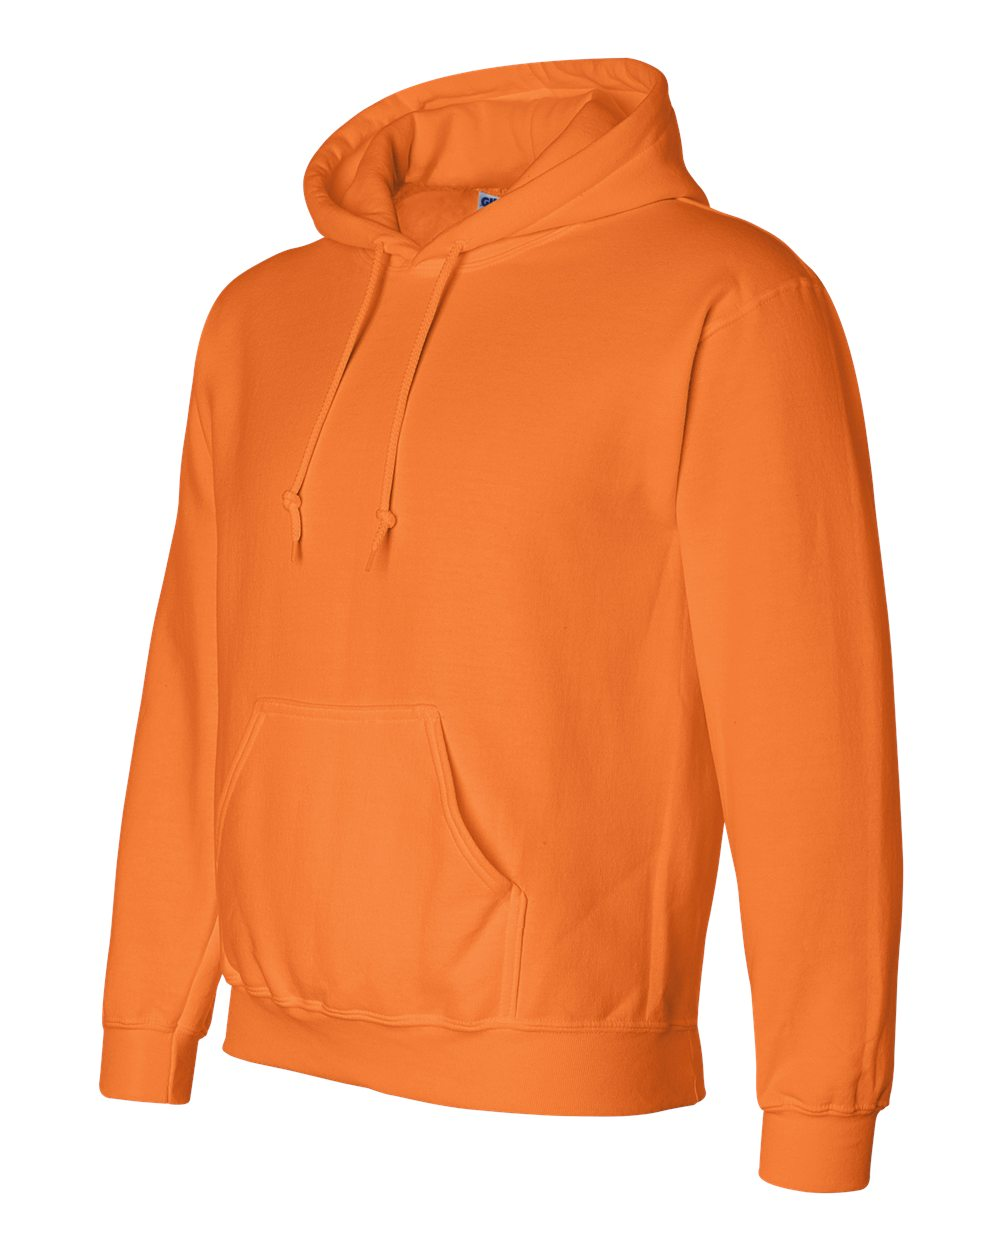 Gildan Ultra Blend Hooded sweater GIL12500 Safety Orange